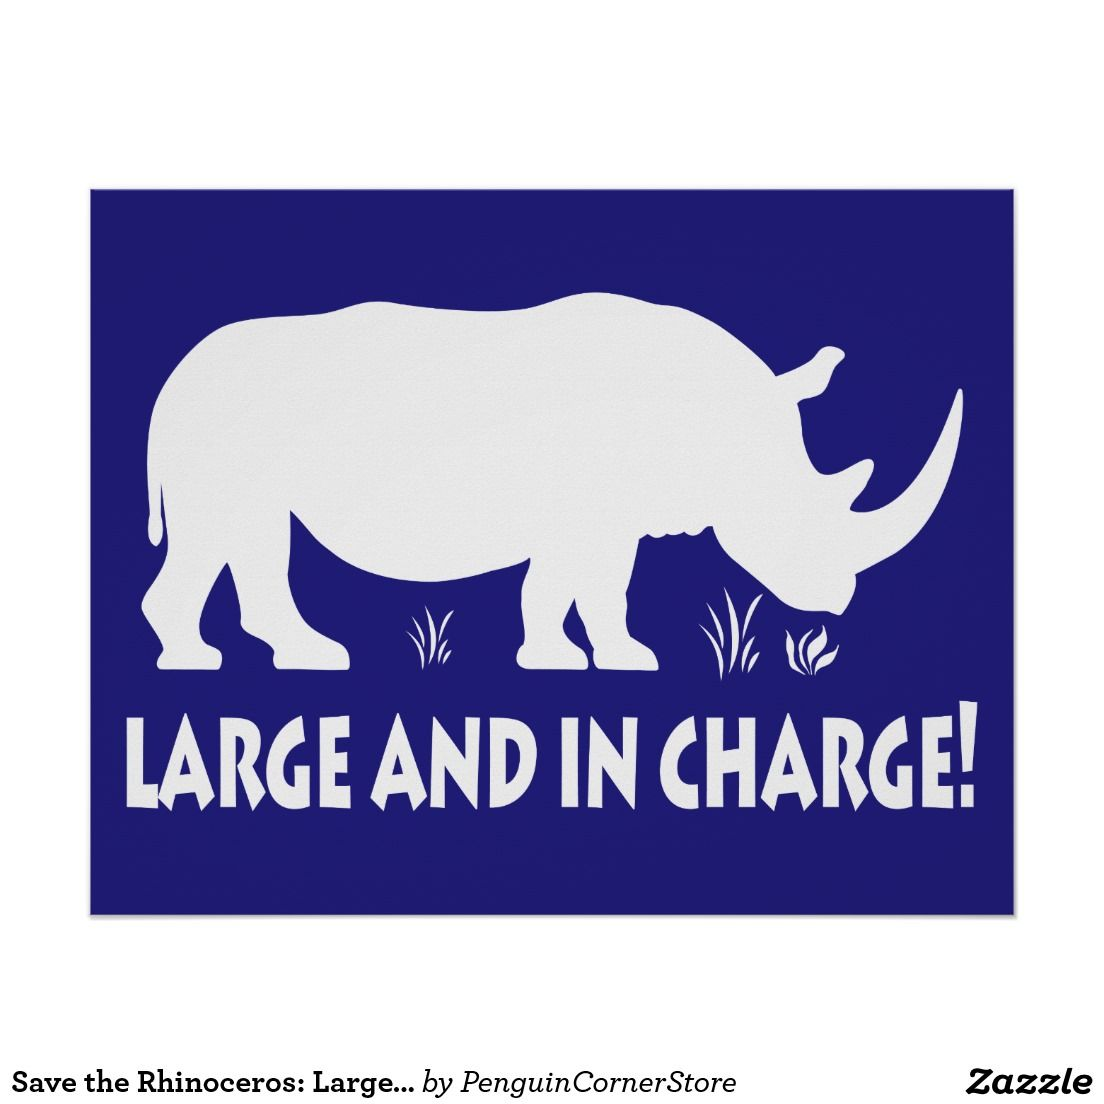 Save the Rhinoceros: Large and in Charge Poster